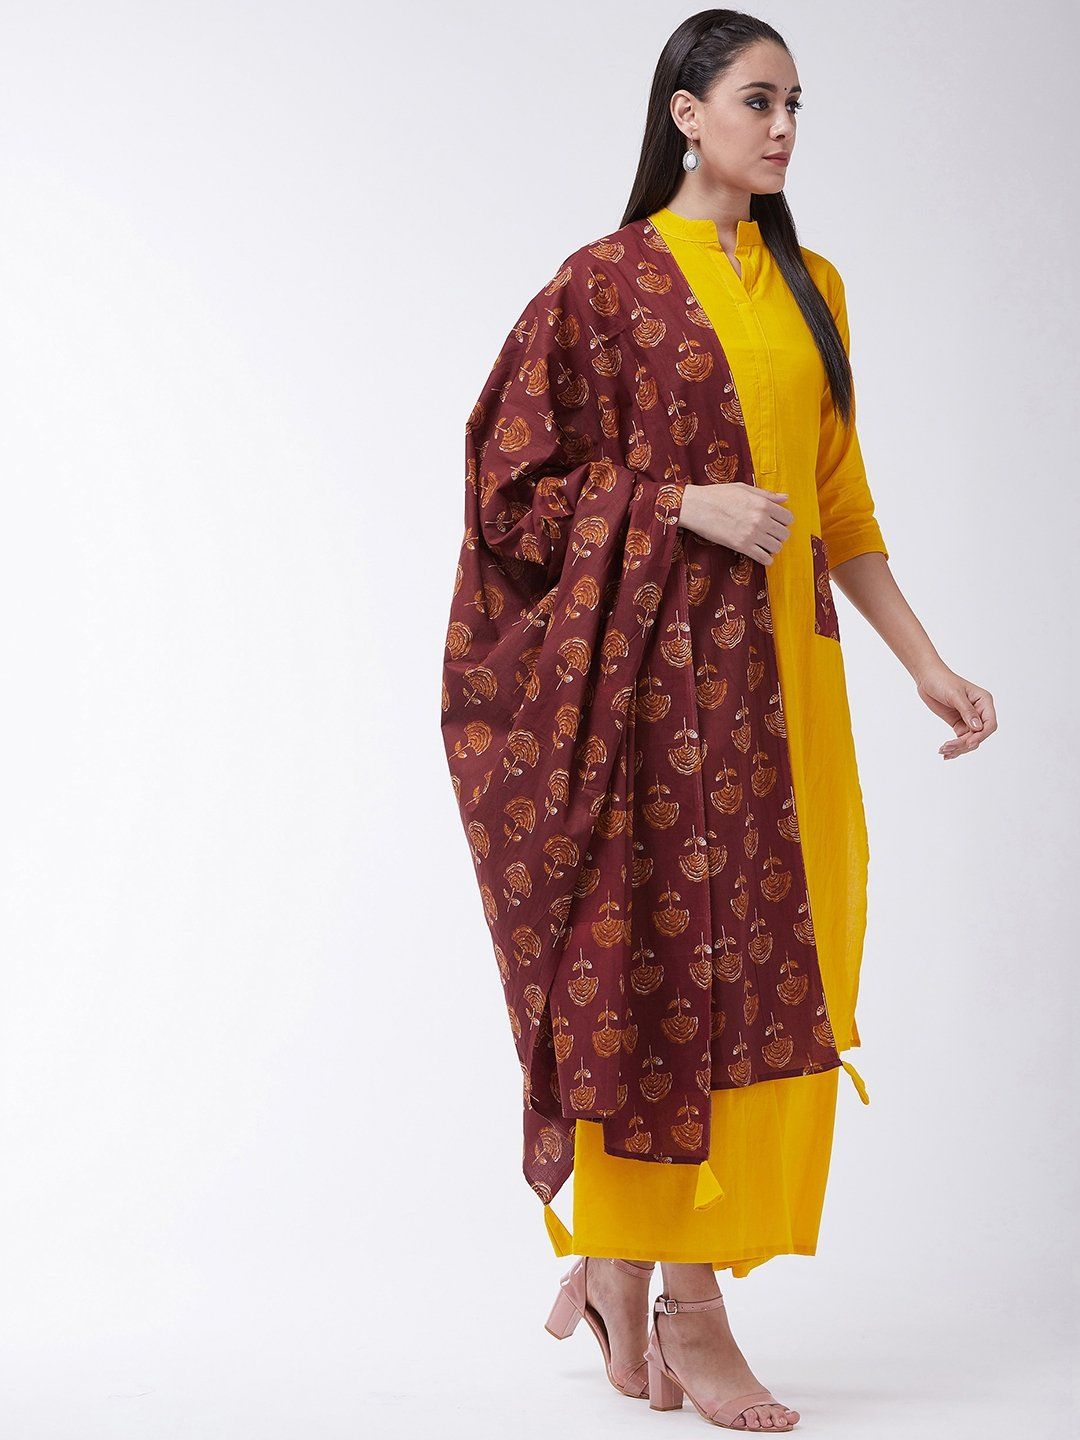 Mustard Maroon Kurta With Patch Pocket Palazo Set